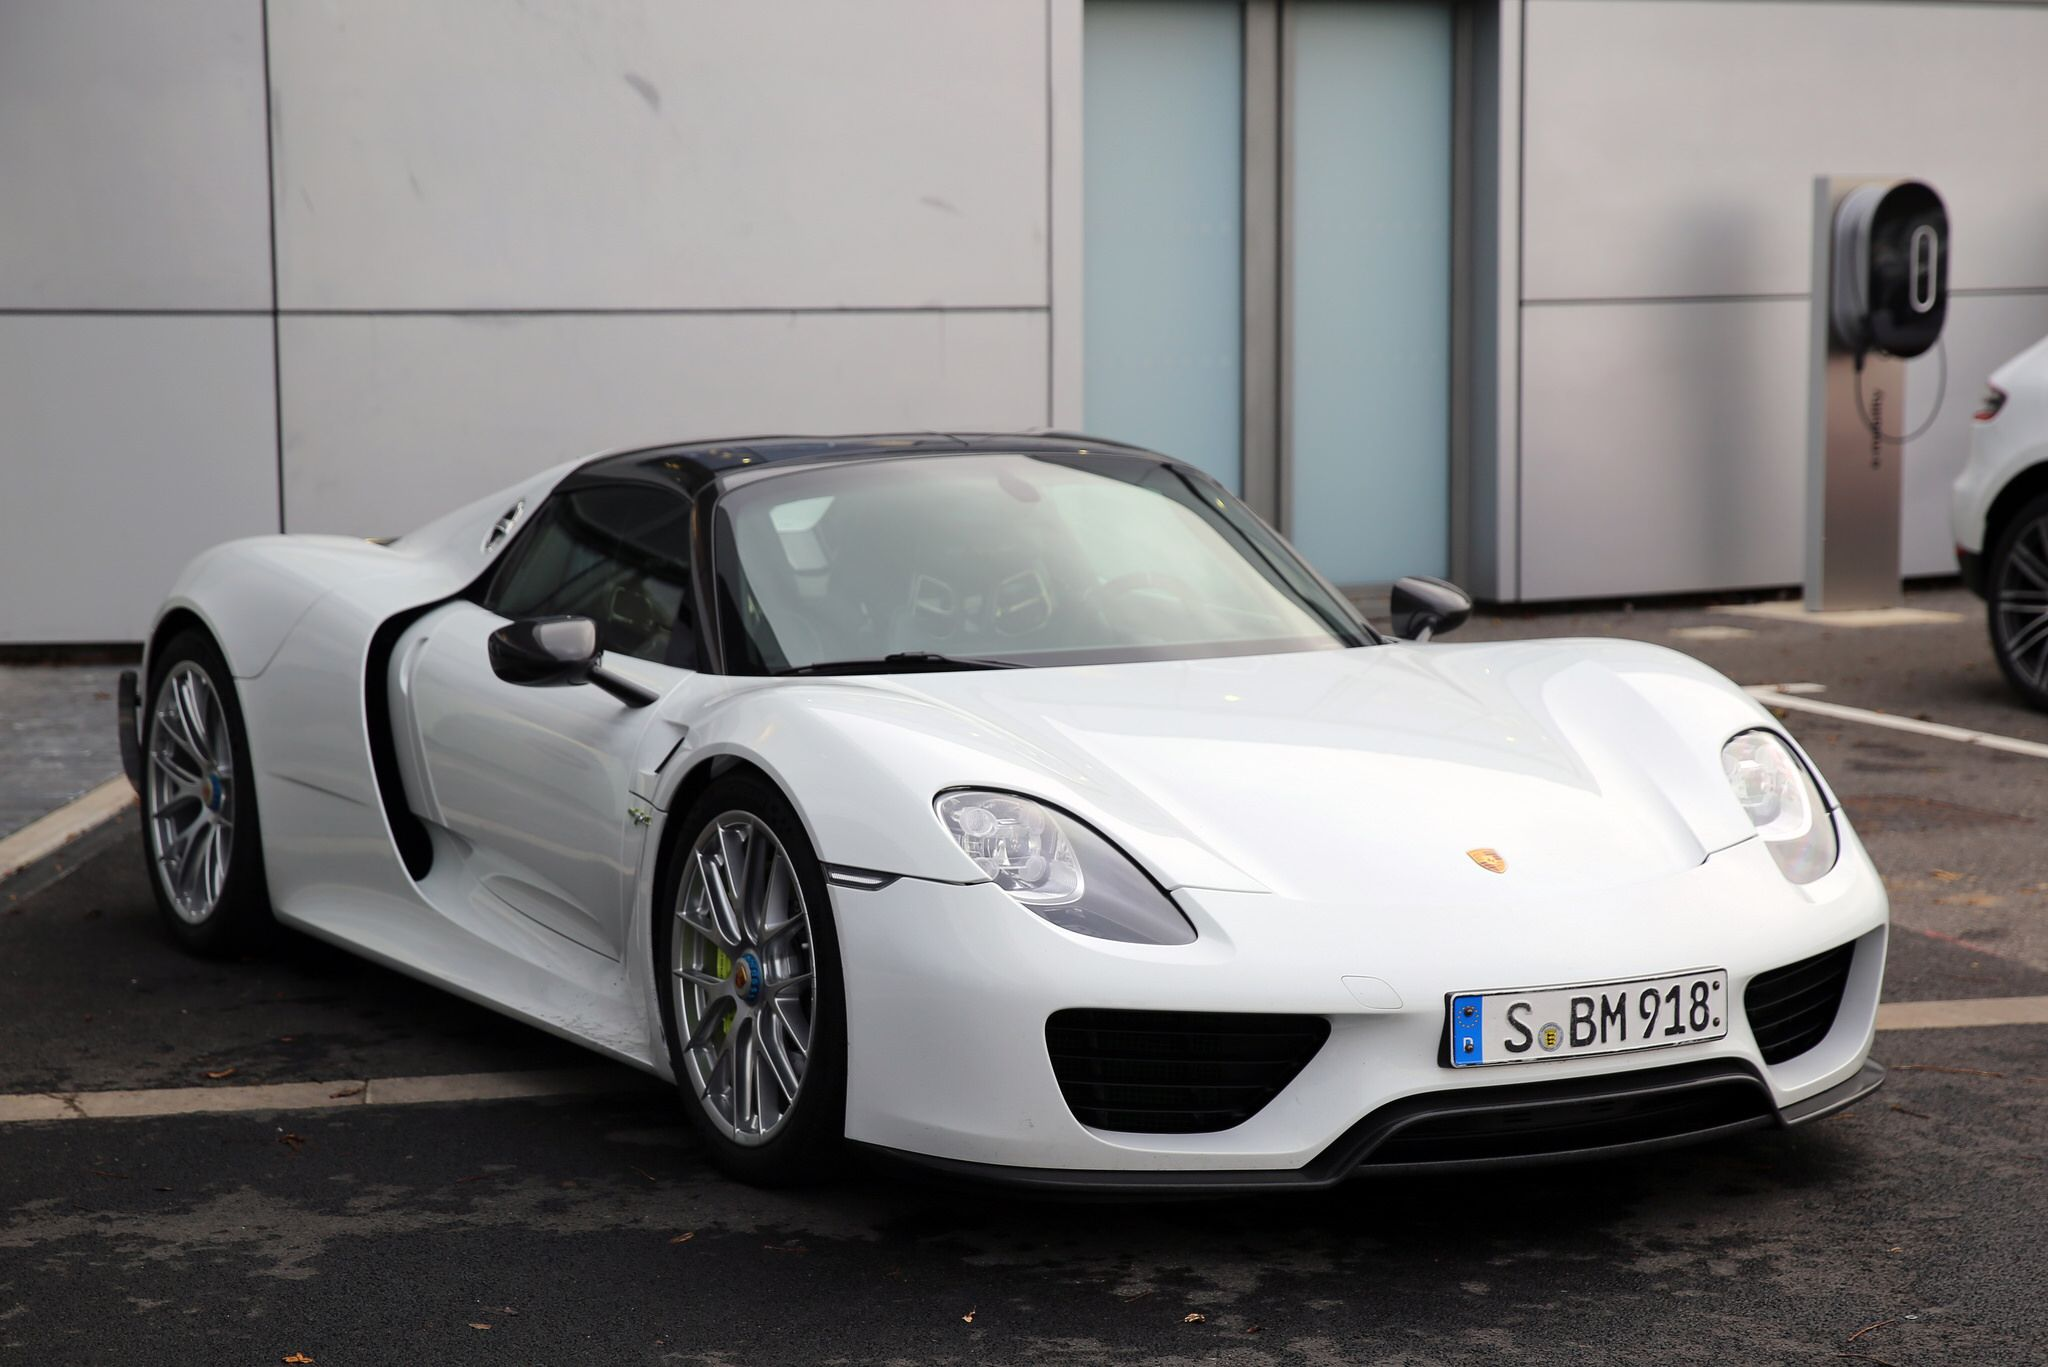 99feb5dcc1db123f6169f0f9219c815b Fascinating Porsche 918 Spyder Blue Flame Exhaust Cars Trend